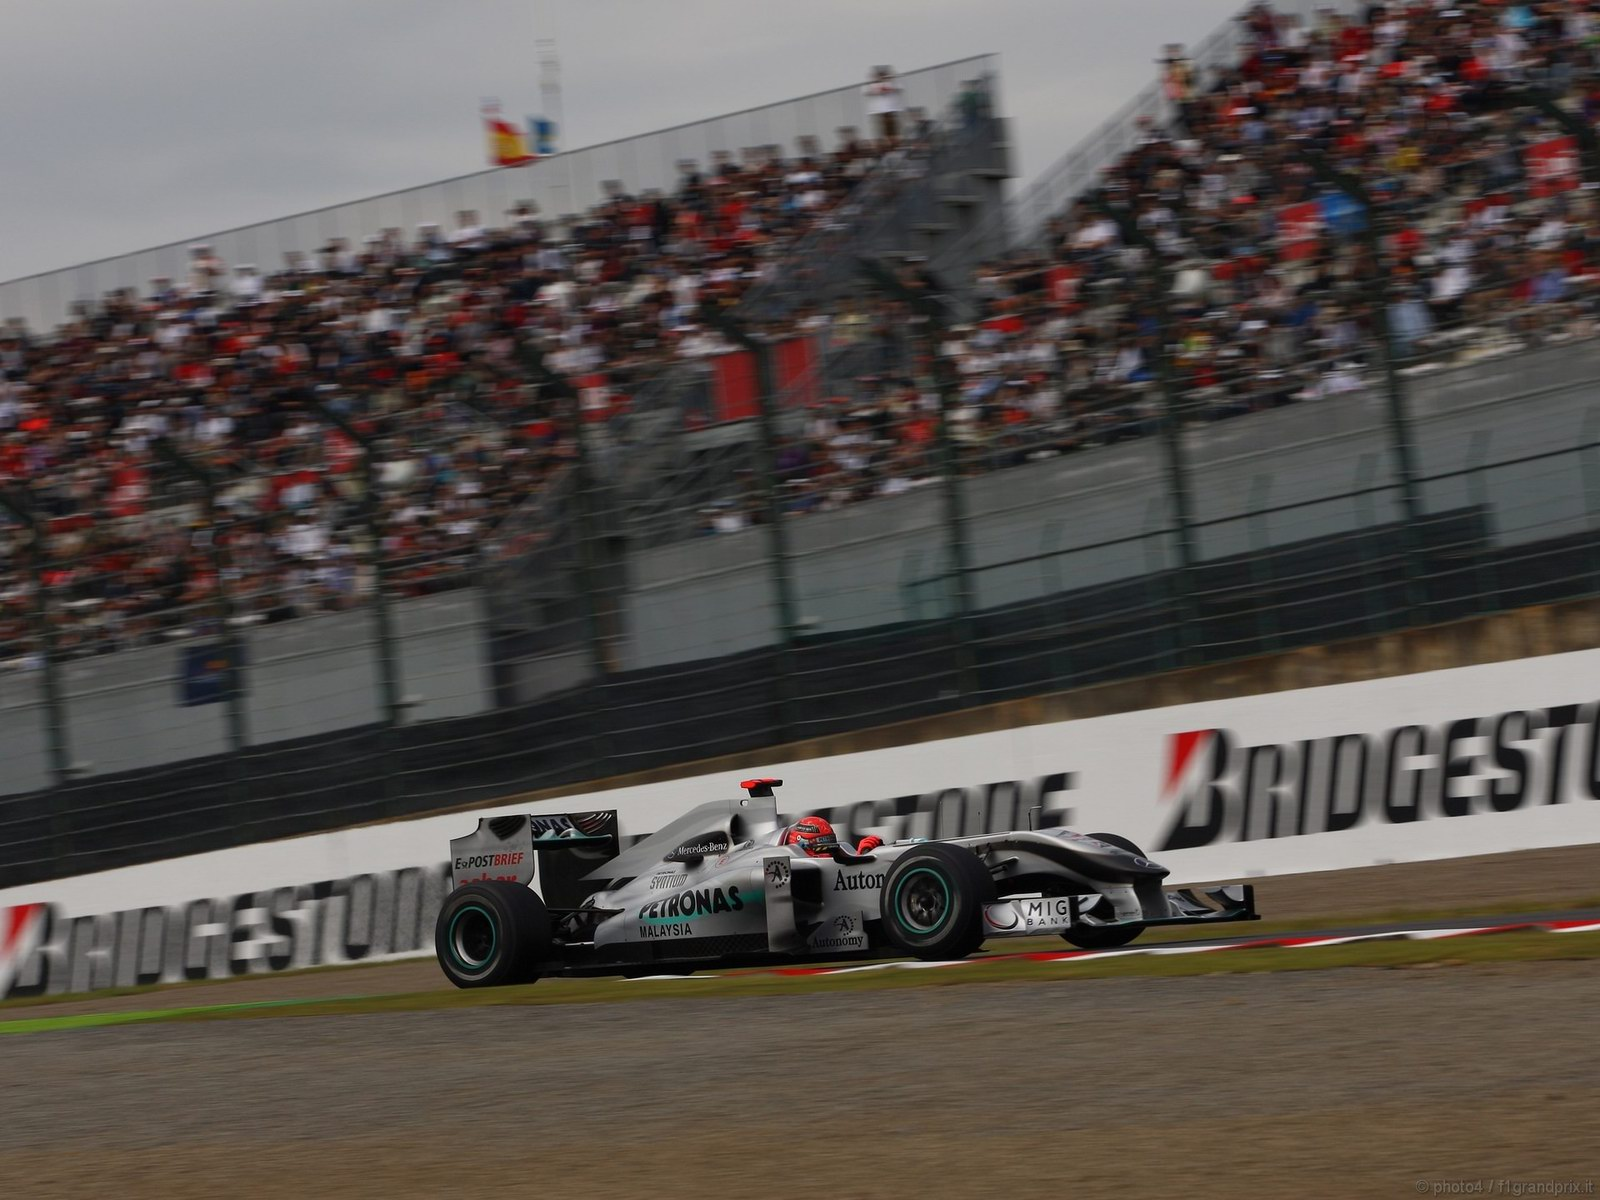 pojazdy - formula1 - gp_giappone_wallpapers_000029